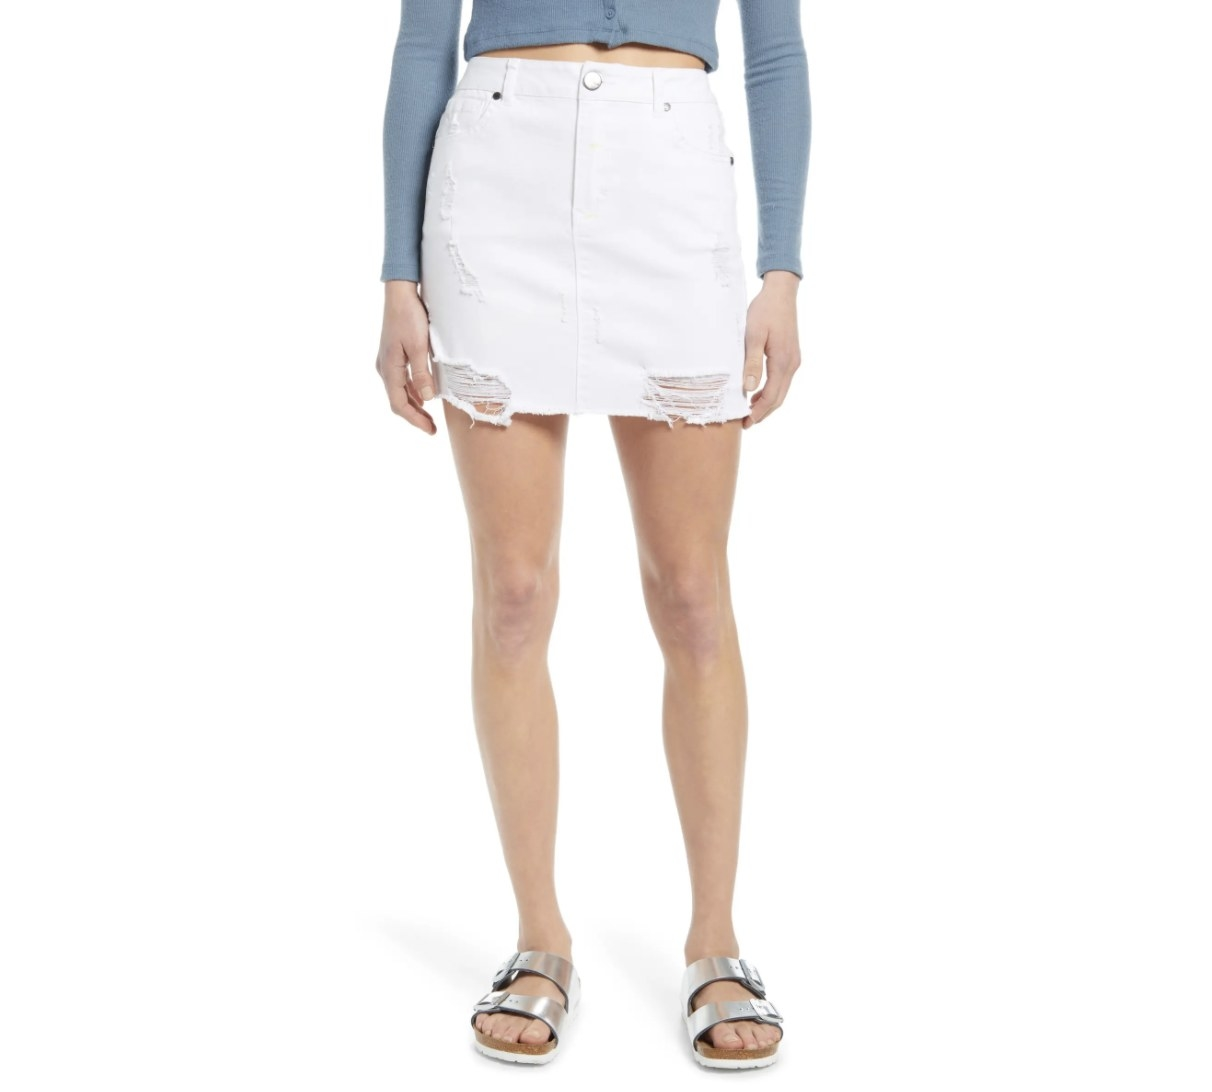 Model is wearing a white denim skirt and metallic sandals